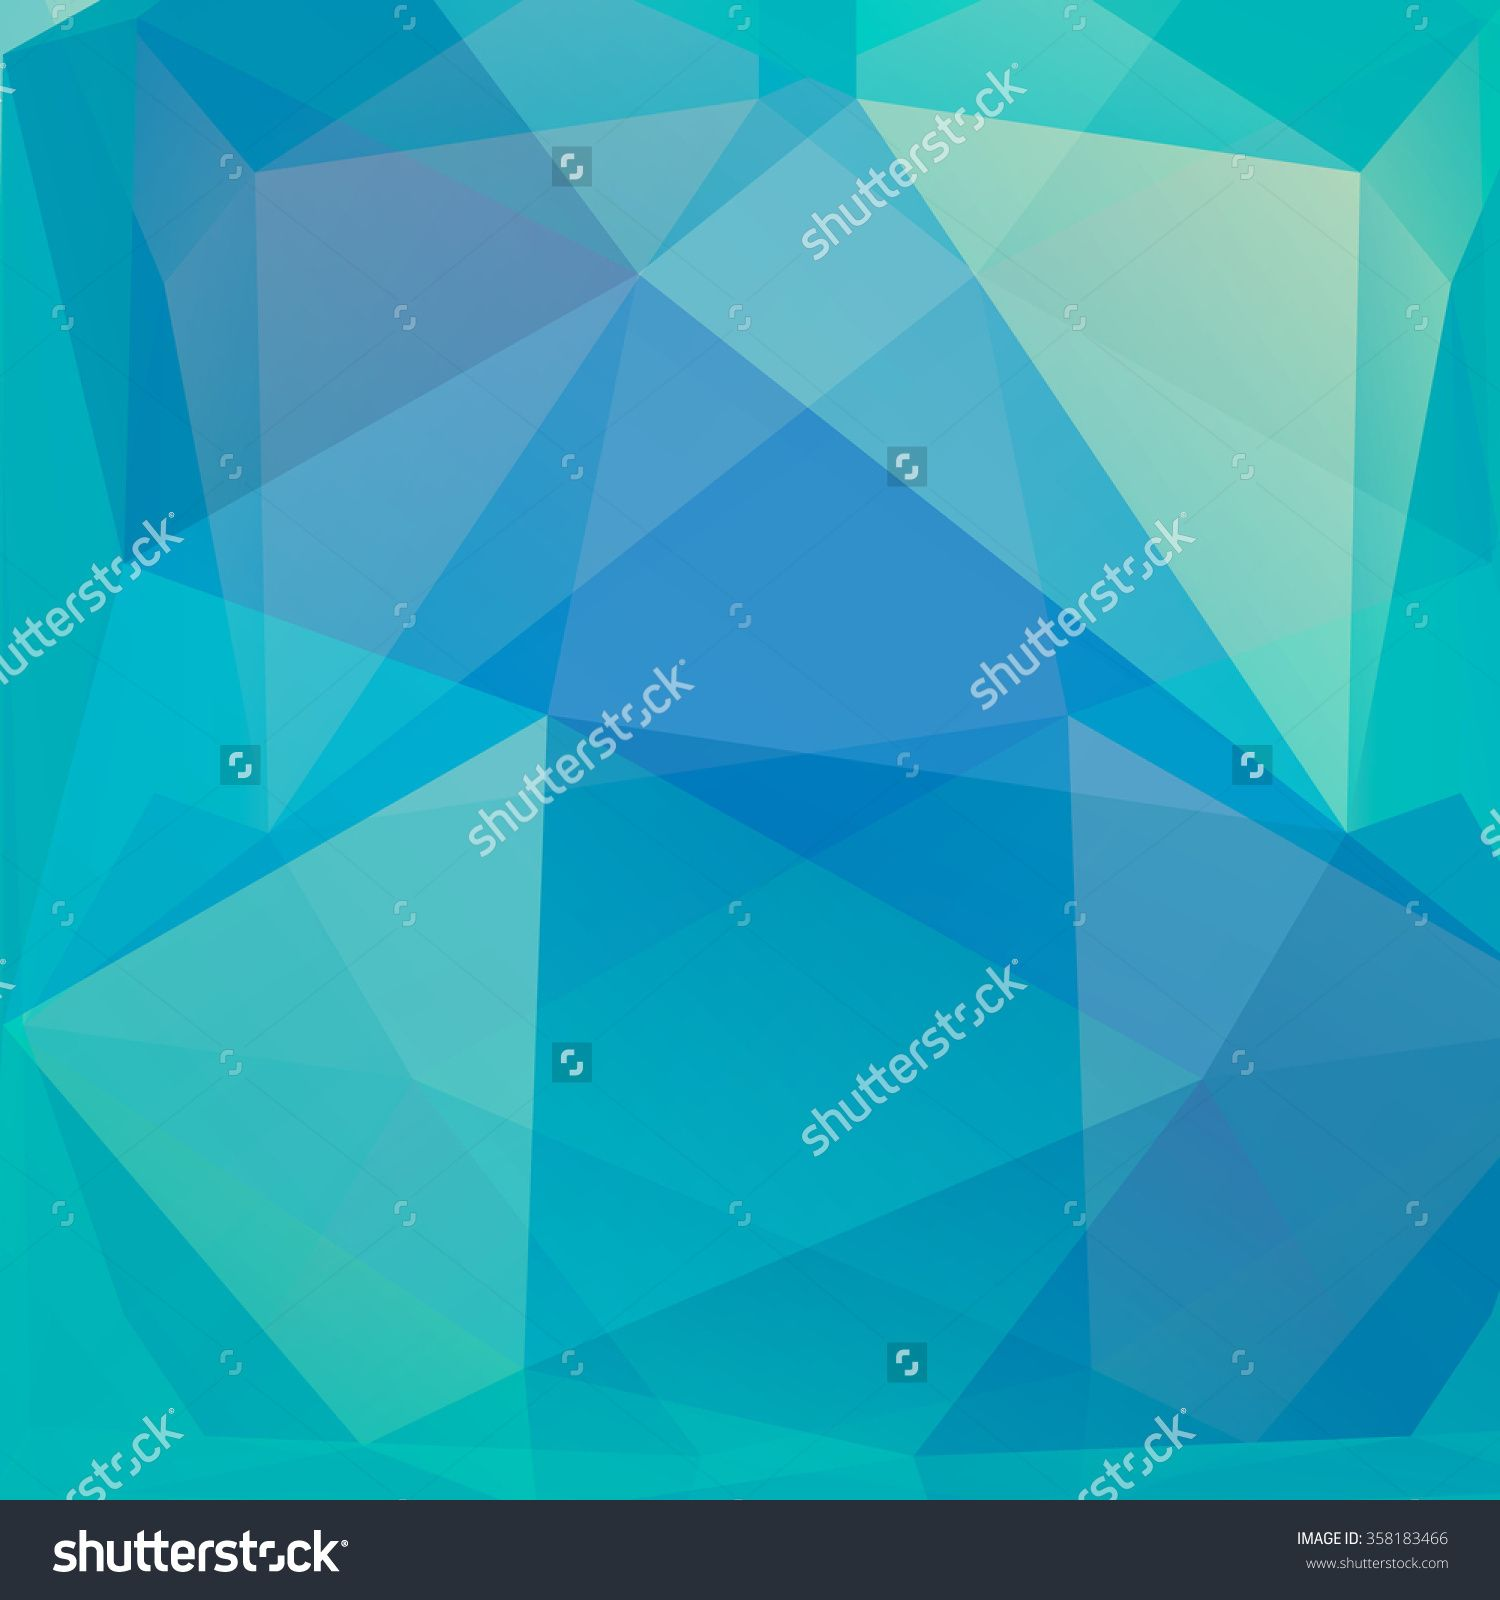 Abstract Low Poly Background For Mobile Apps, Wallpapers